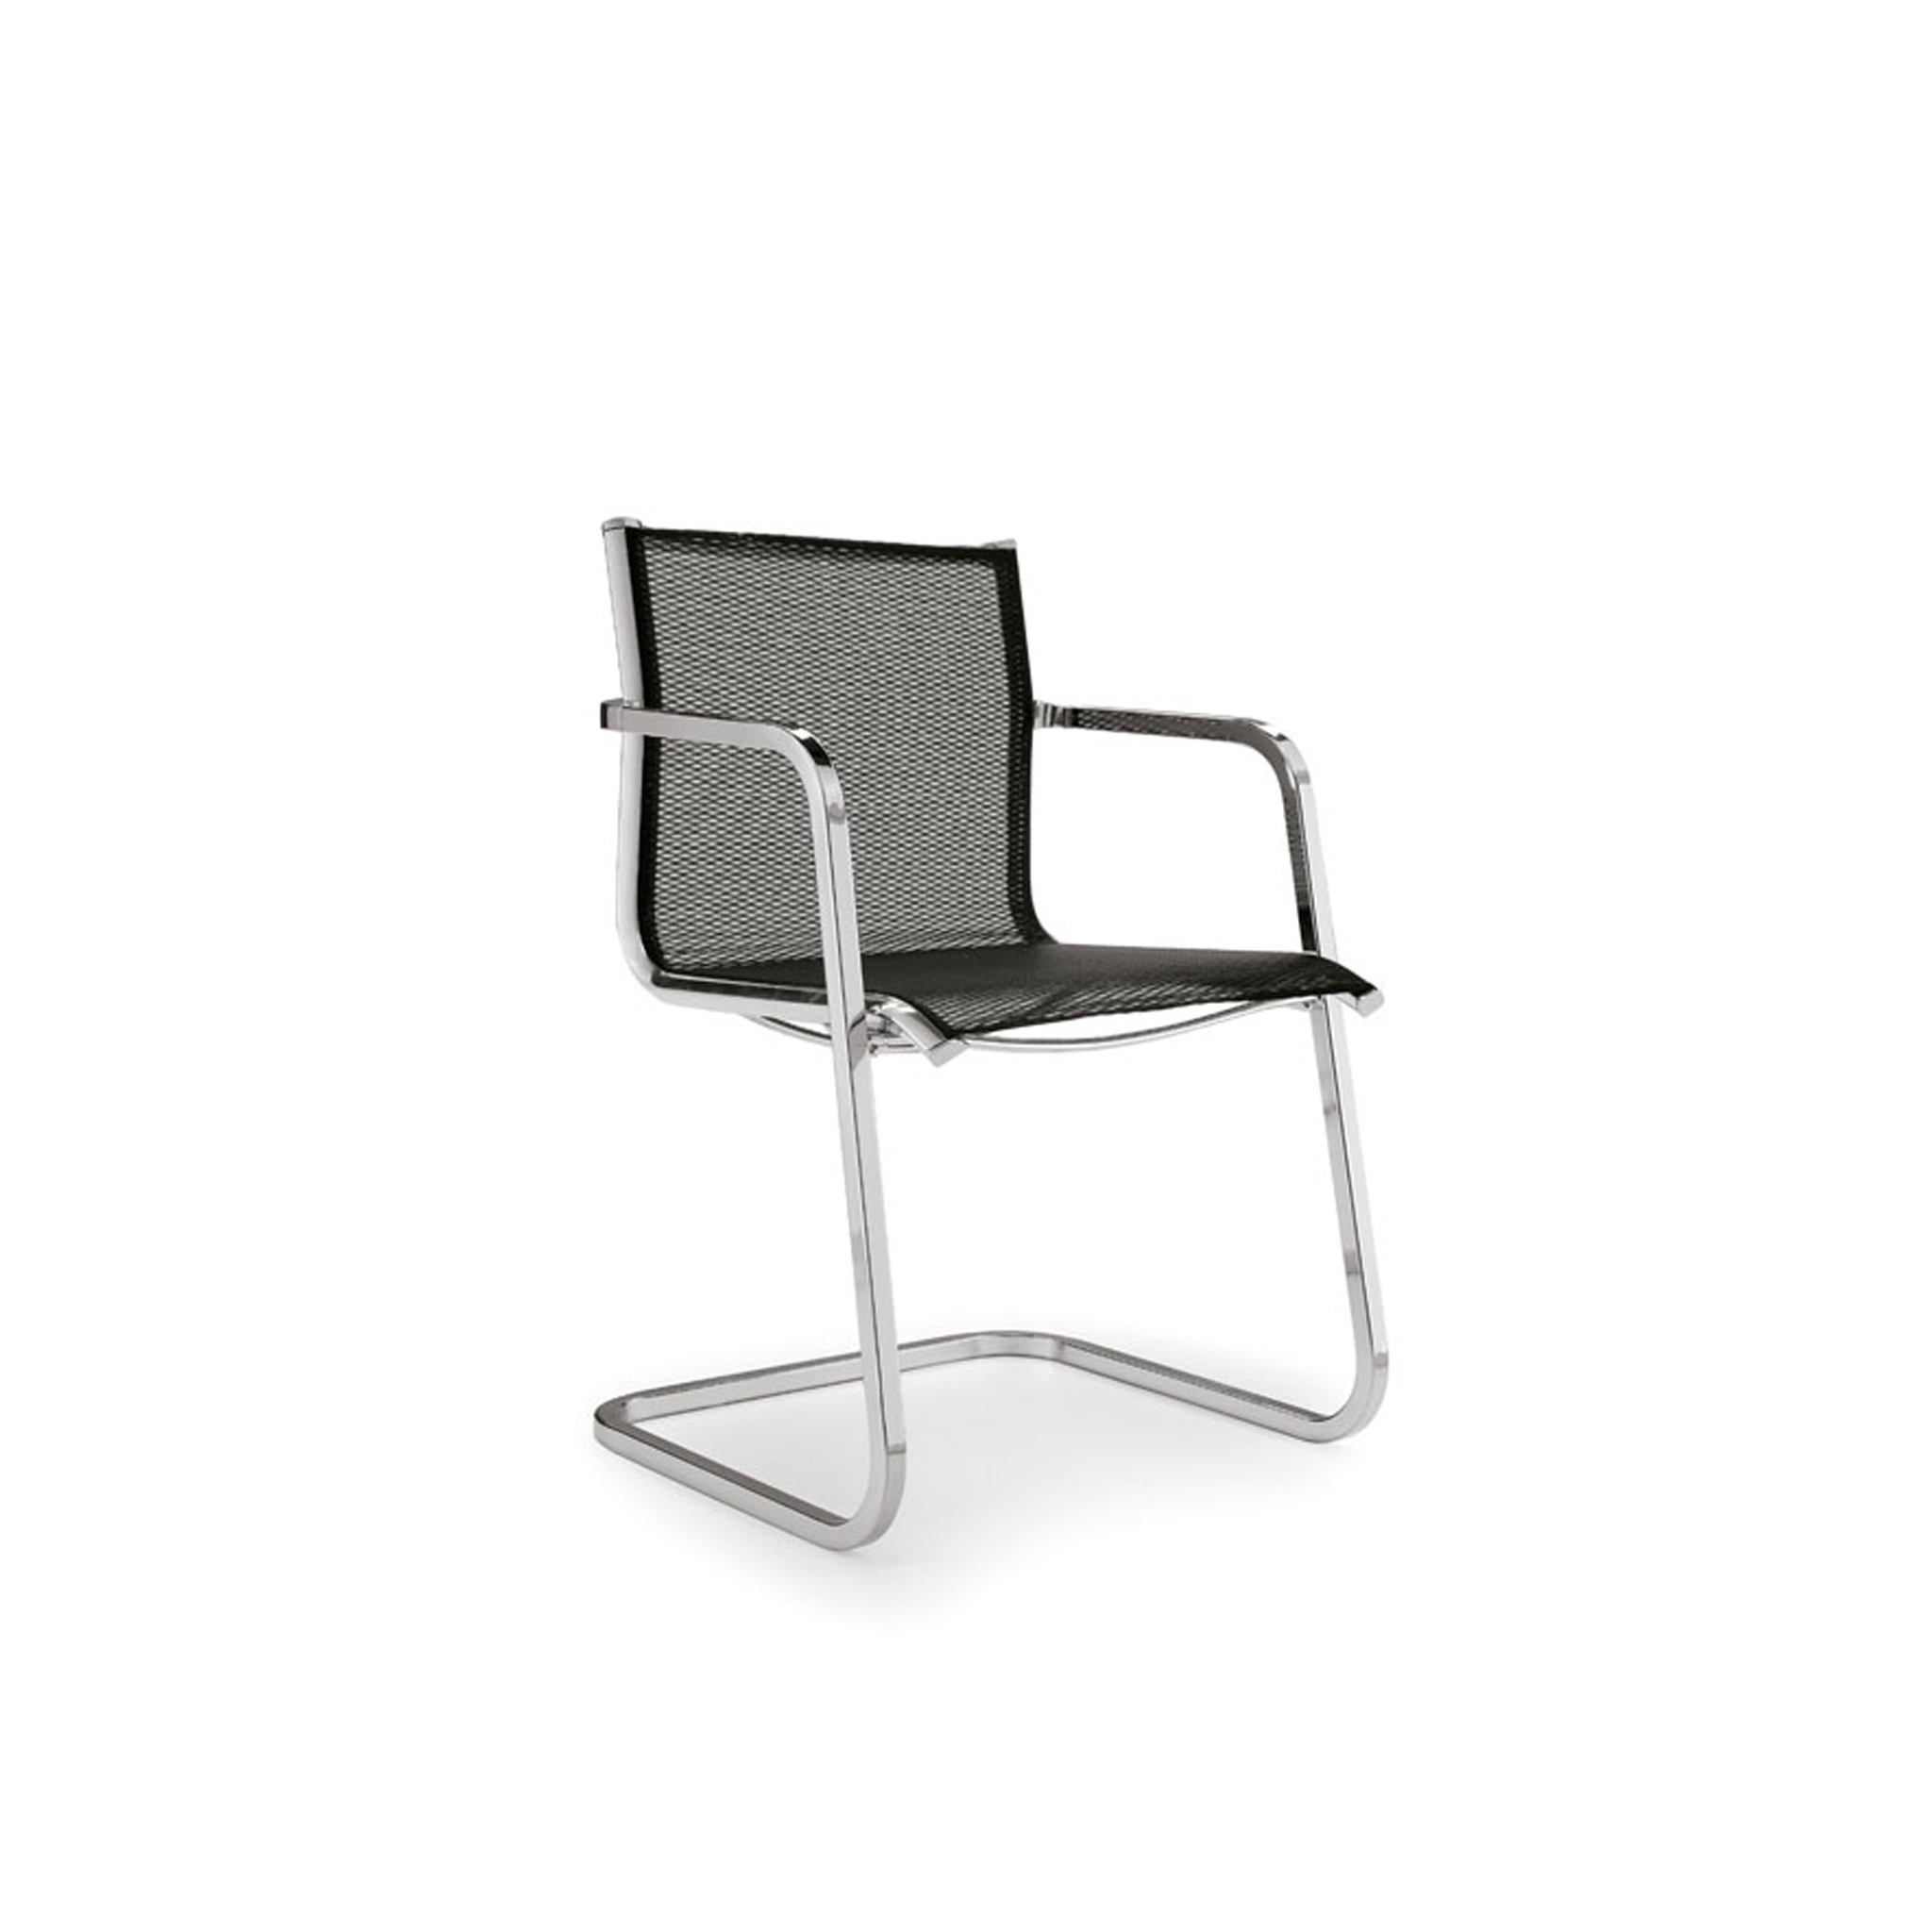 06S_Estel_Comfort&Relax_Office-chair&contract-conference_Aluminia